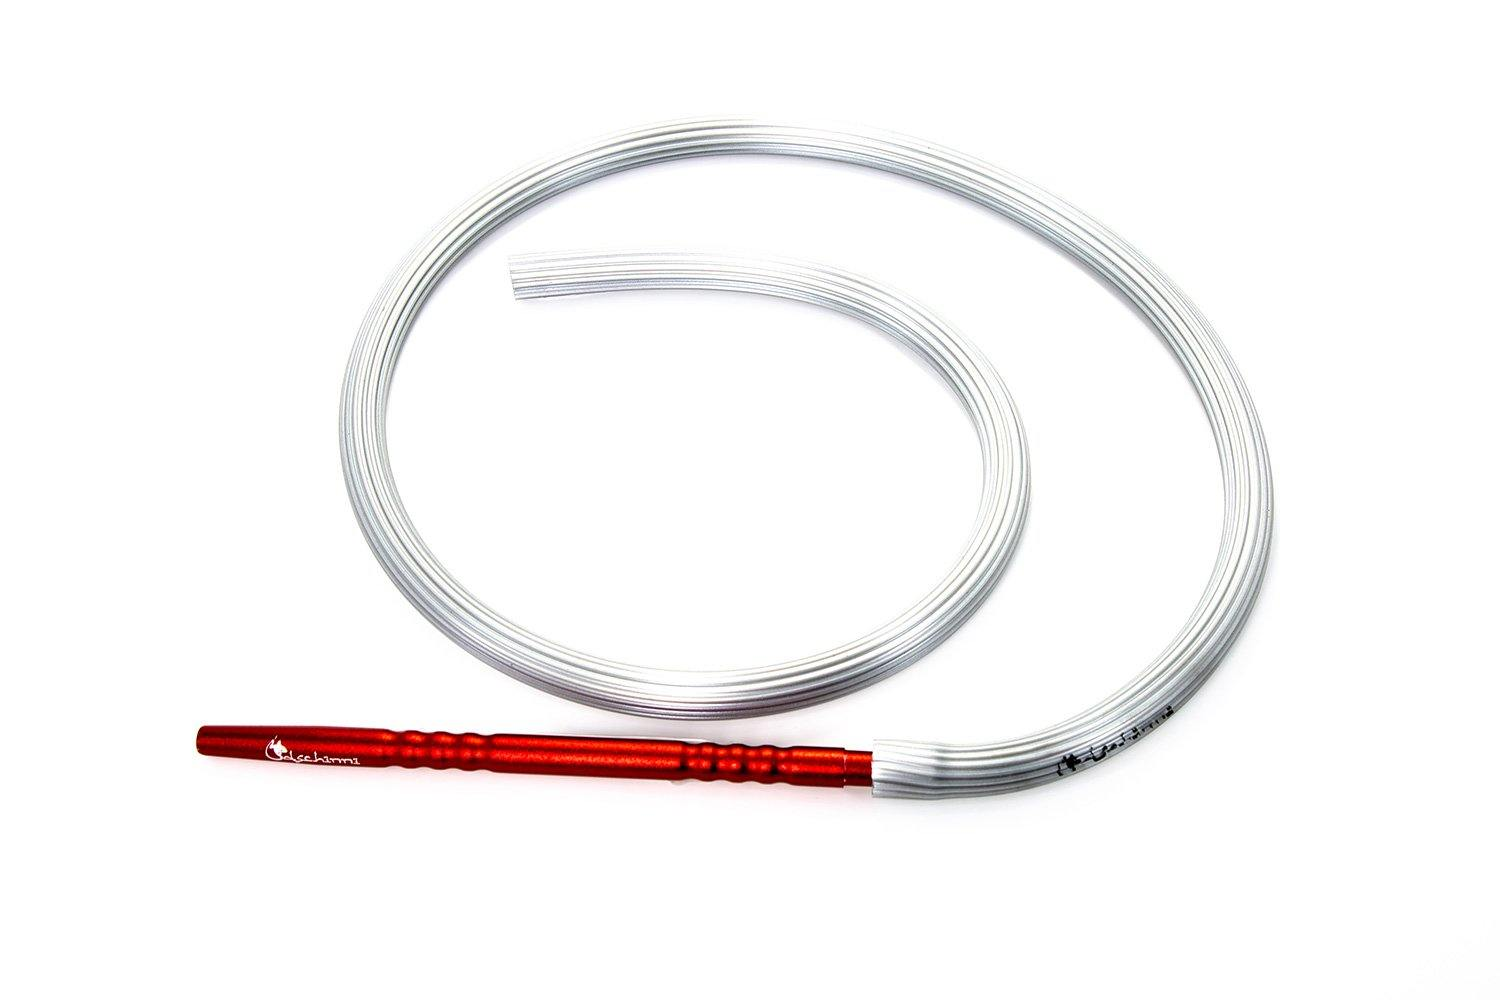 Dschinni Candyhose Silver with Aluminium Red Mouthpiece